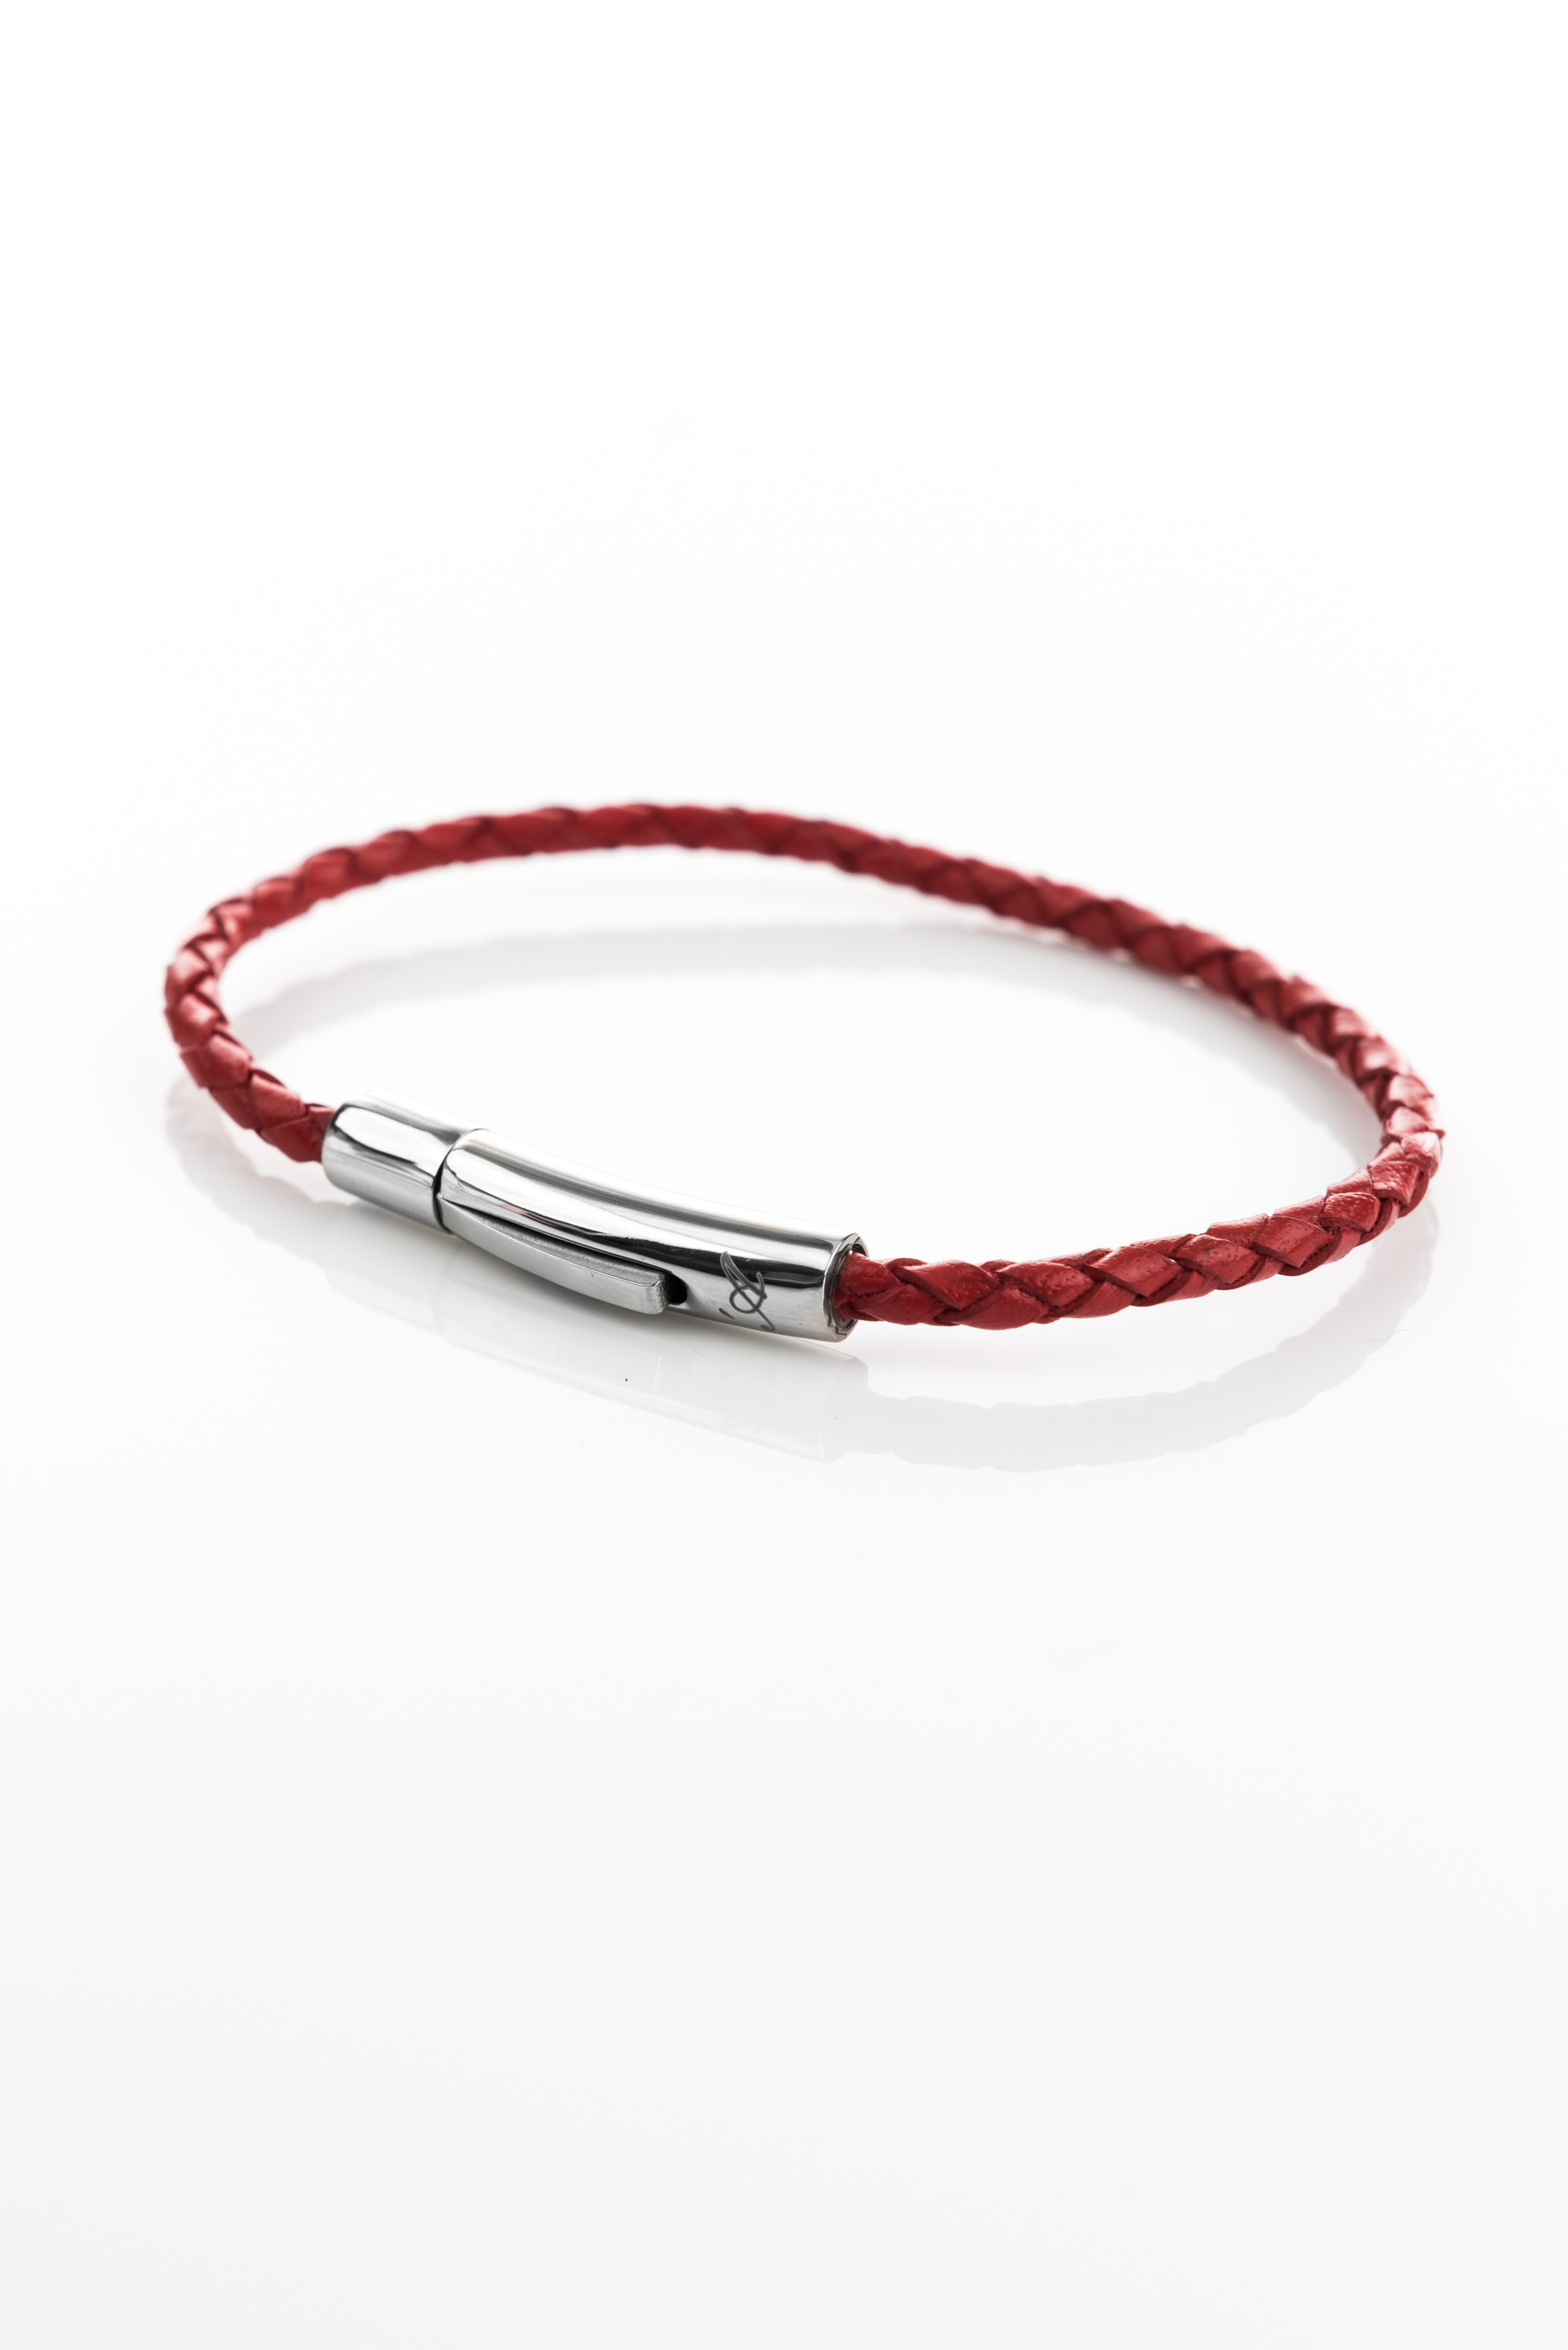 red ebay knotted string jewelry protection yoga bracelets itm handmade bracelet goddess blessed